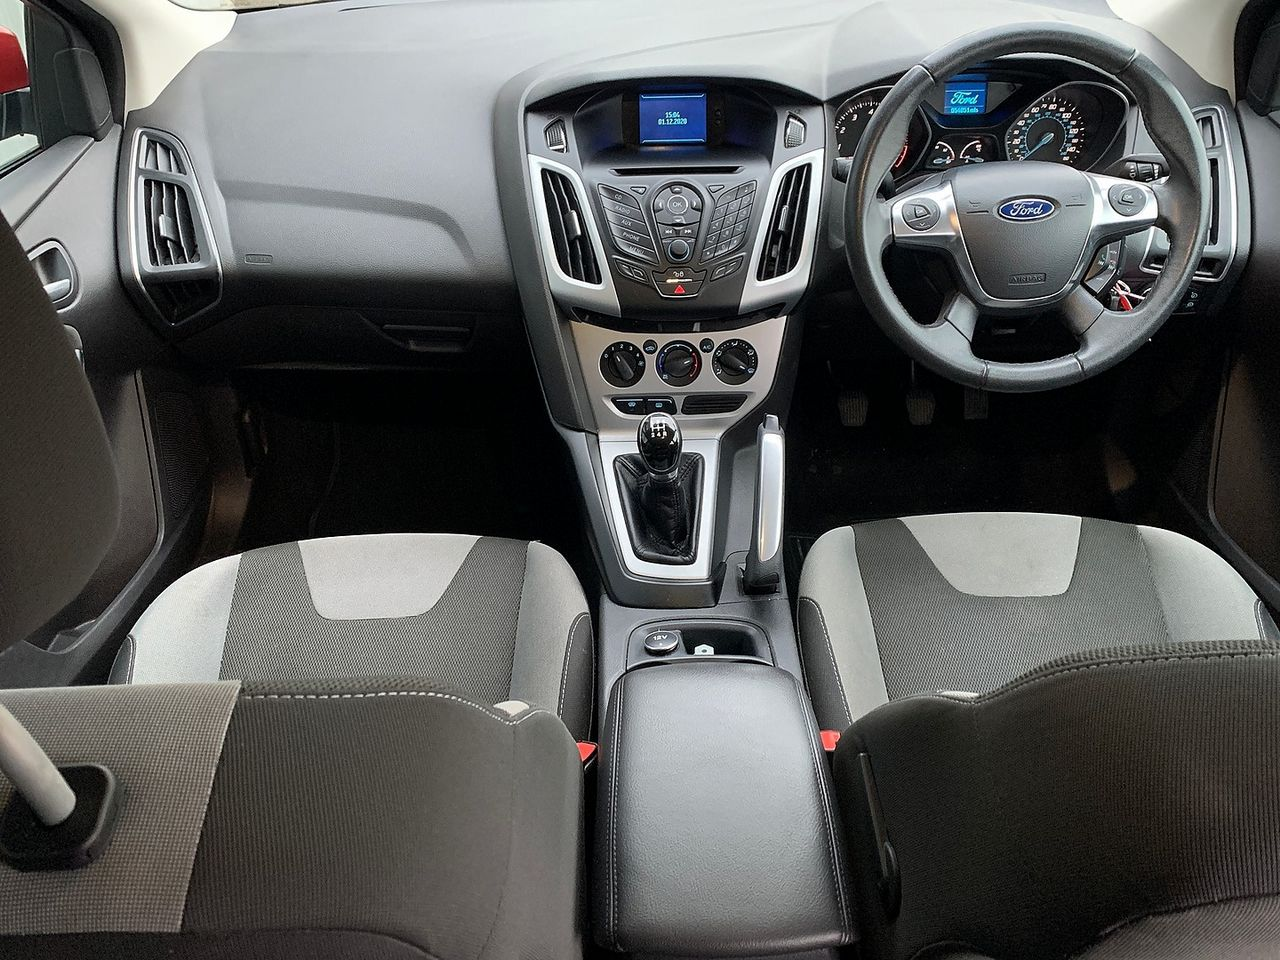 2011 FORD Focus Zetec 1.6 Ti-VCT 125 PS - Picture 6 of 9